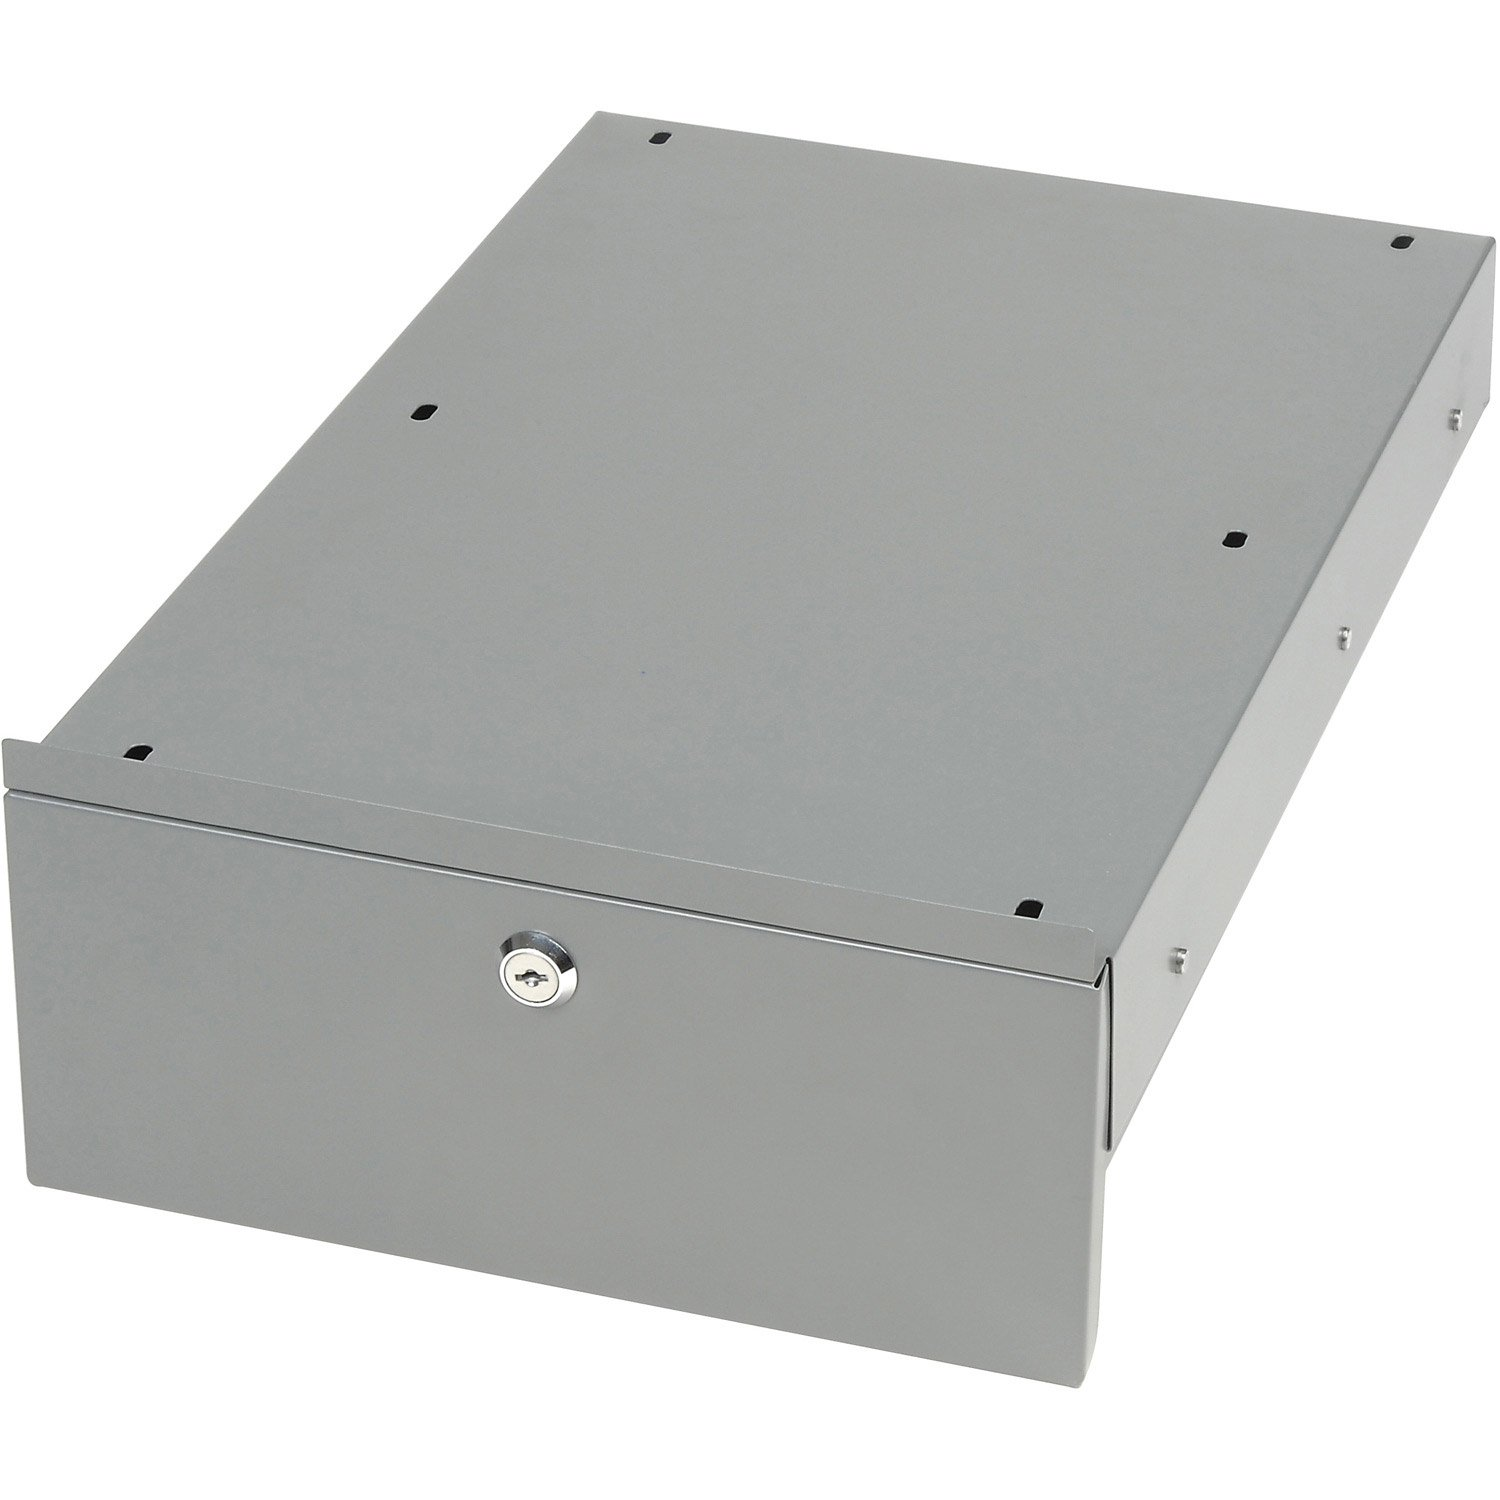 Locking Steel Drawer with Divider for Plastic or Steel Carts, 10-3/4''W x 18''D x 4-1/2''H